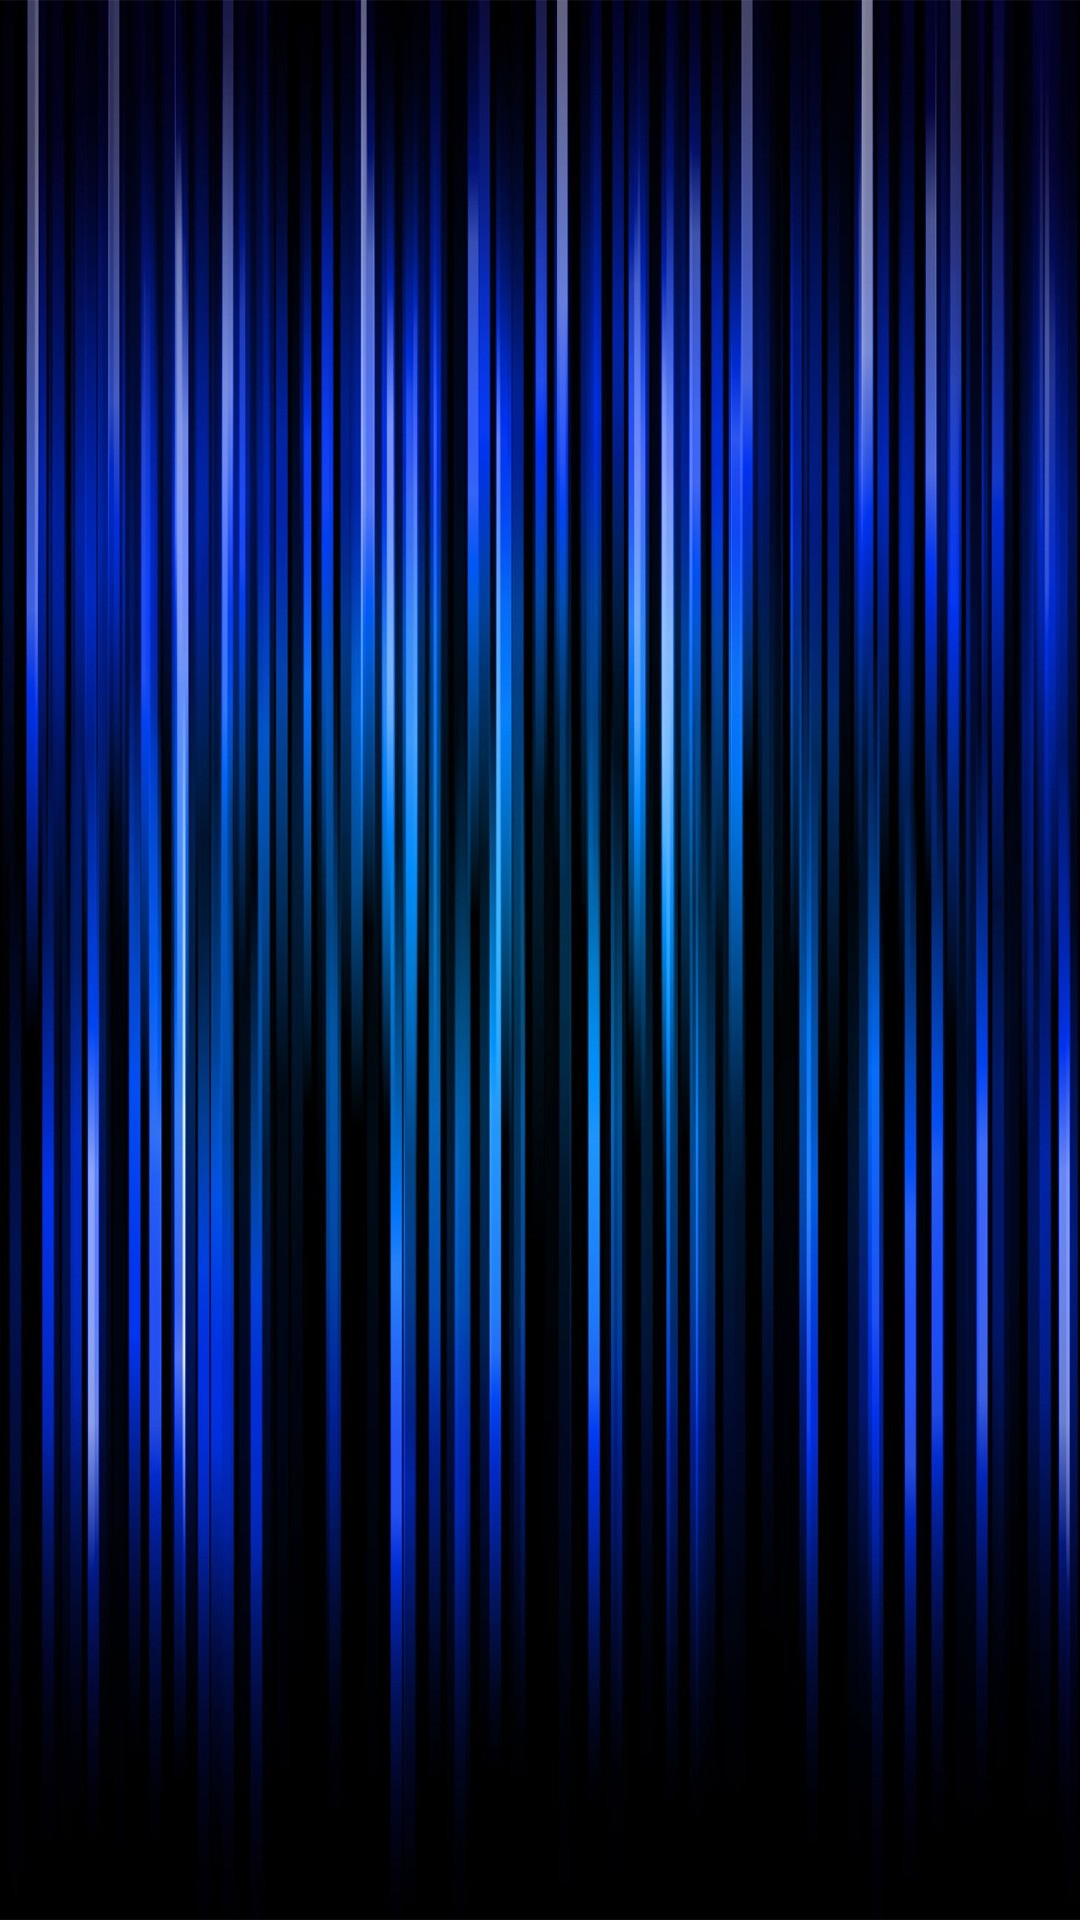 Blue Vertical Lines Abstract 1080x1920